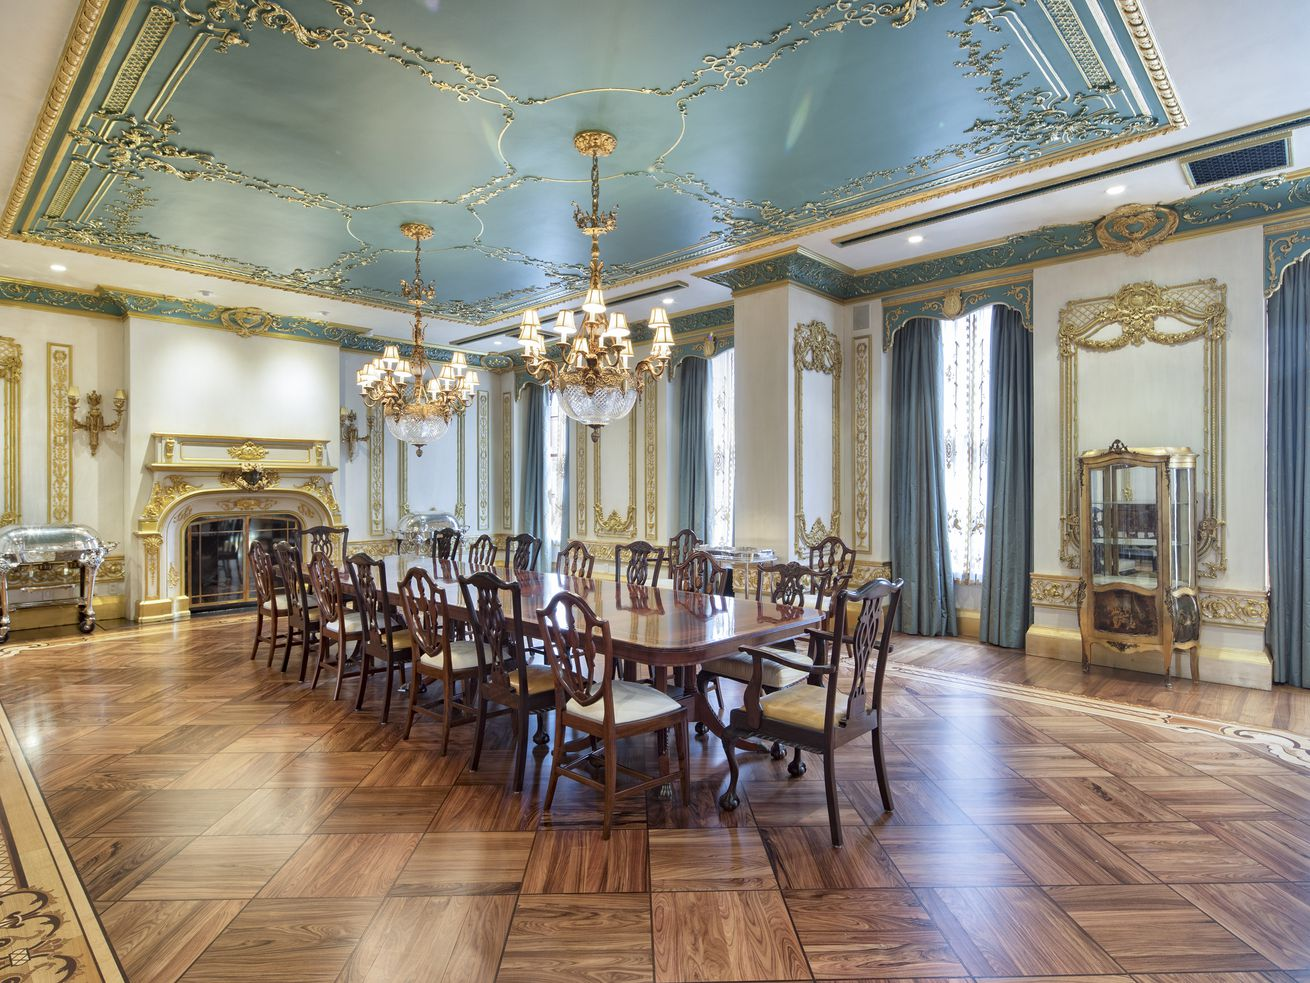 A dining room with hardwood floors, a large wooden table with chairs, large windows with blue curtains, two chandeliers, and a wood-burning fireplace.